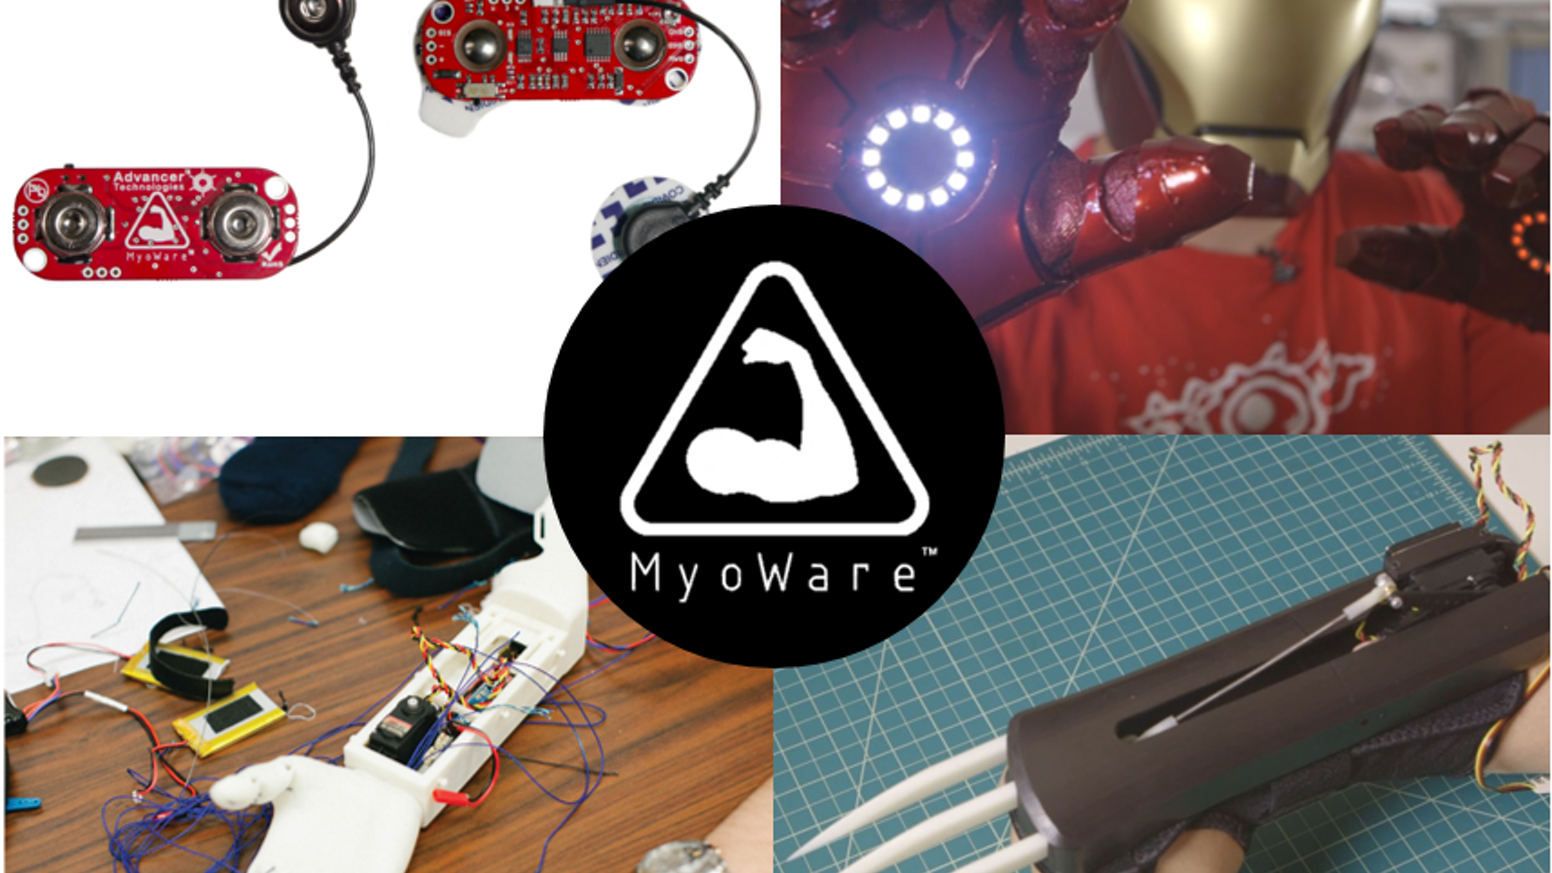 Myoware Harness The Power Of Your Muscle Signals By Advancer Circuit Is Now Likely To Work As Original Signal Wearable Sensor Platform 4th Gen Arduino Compatible Control Robots